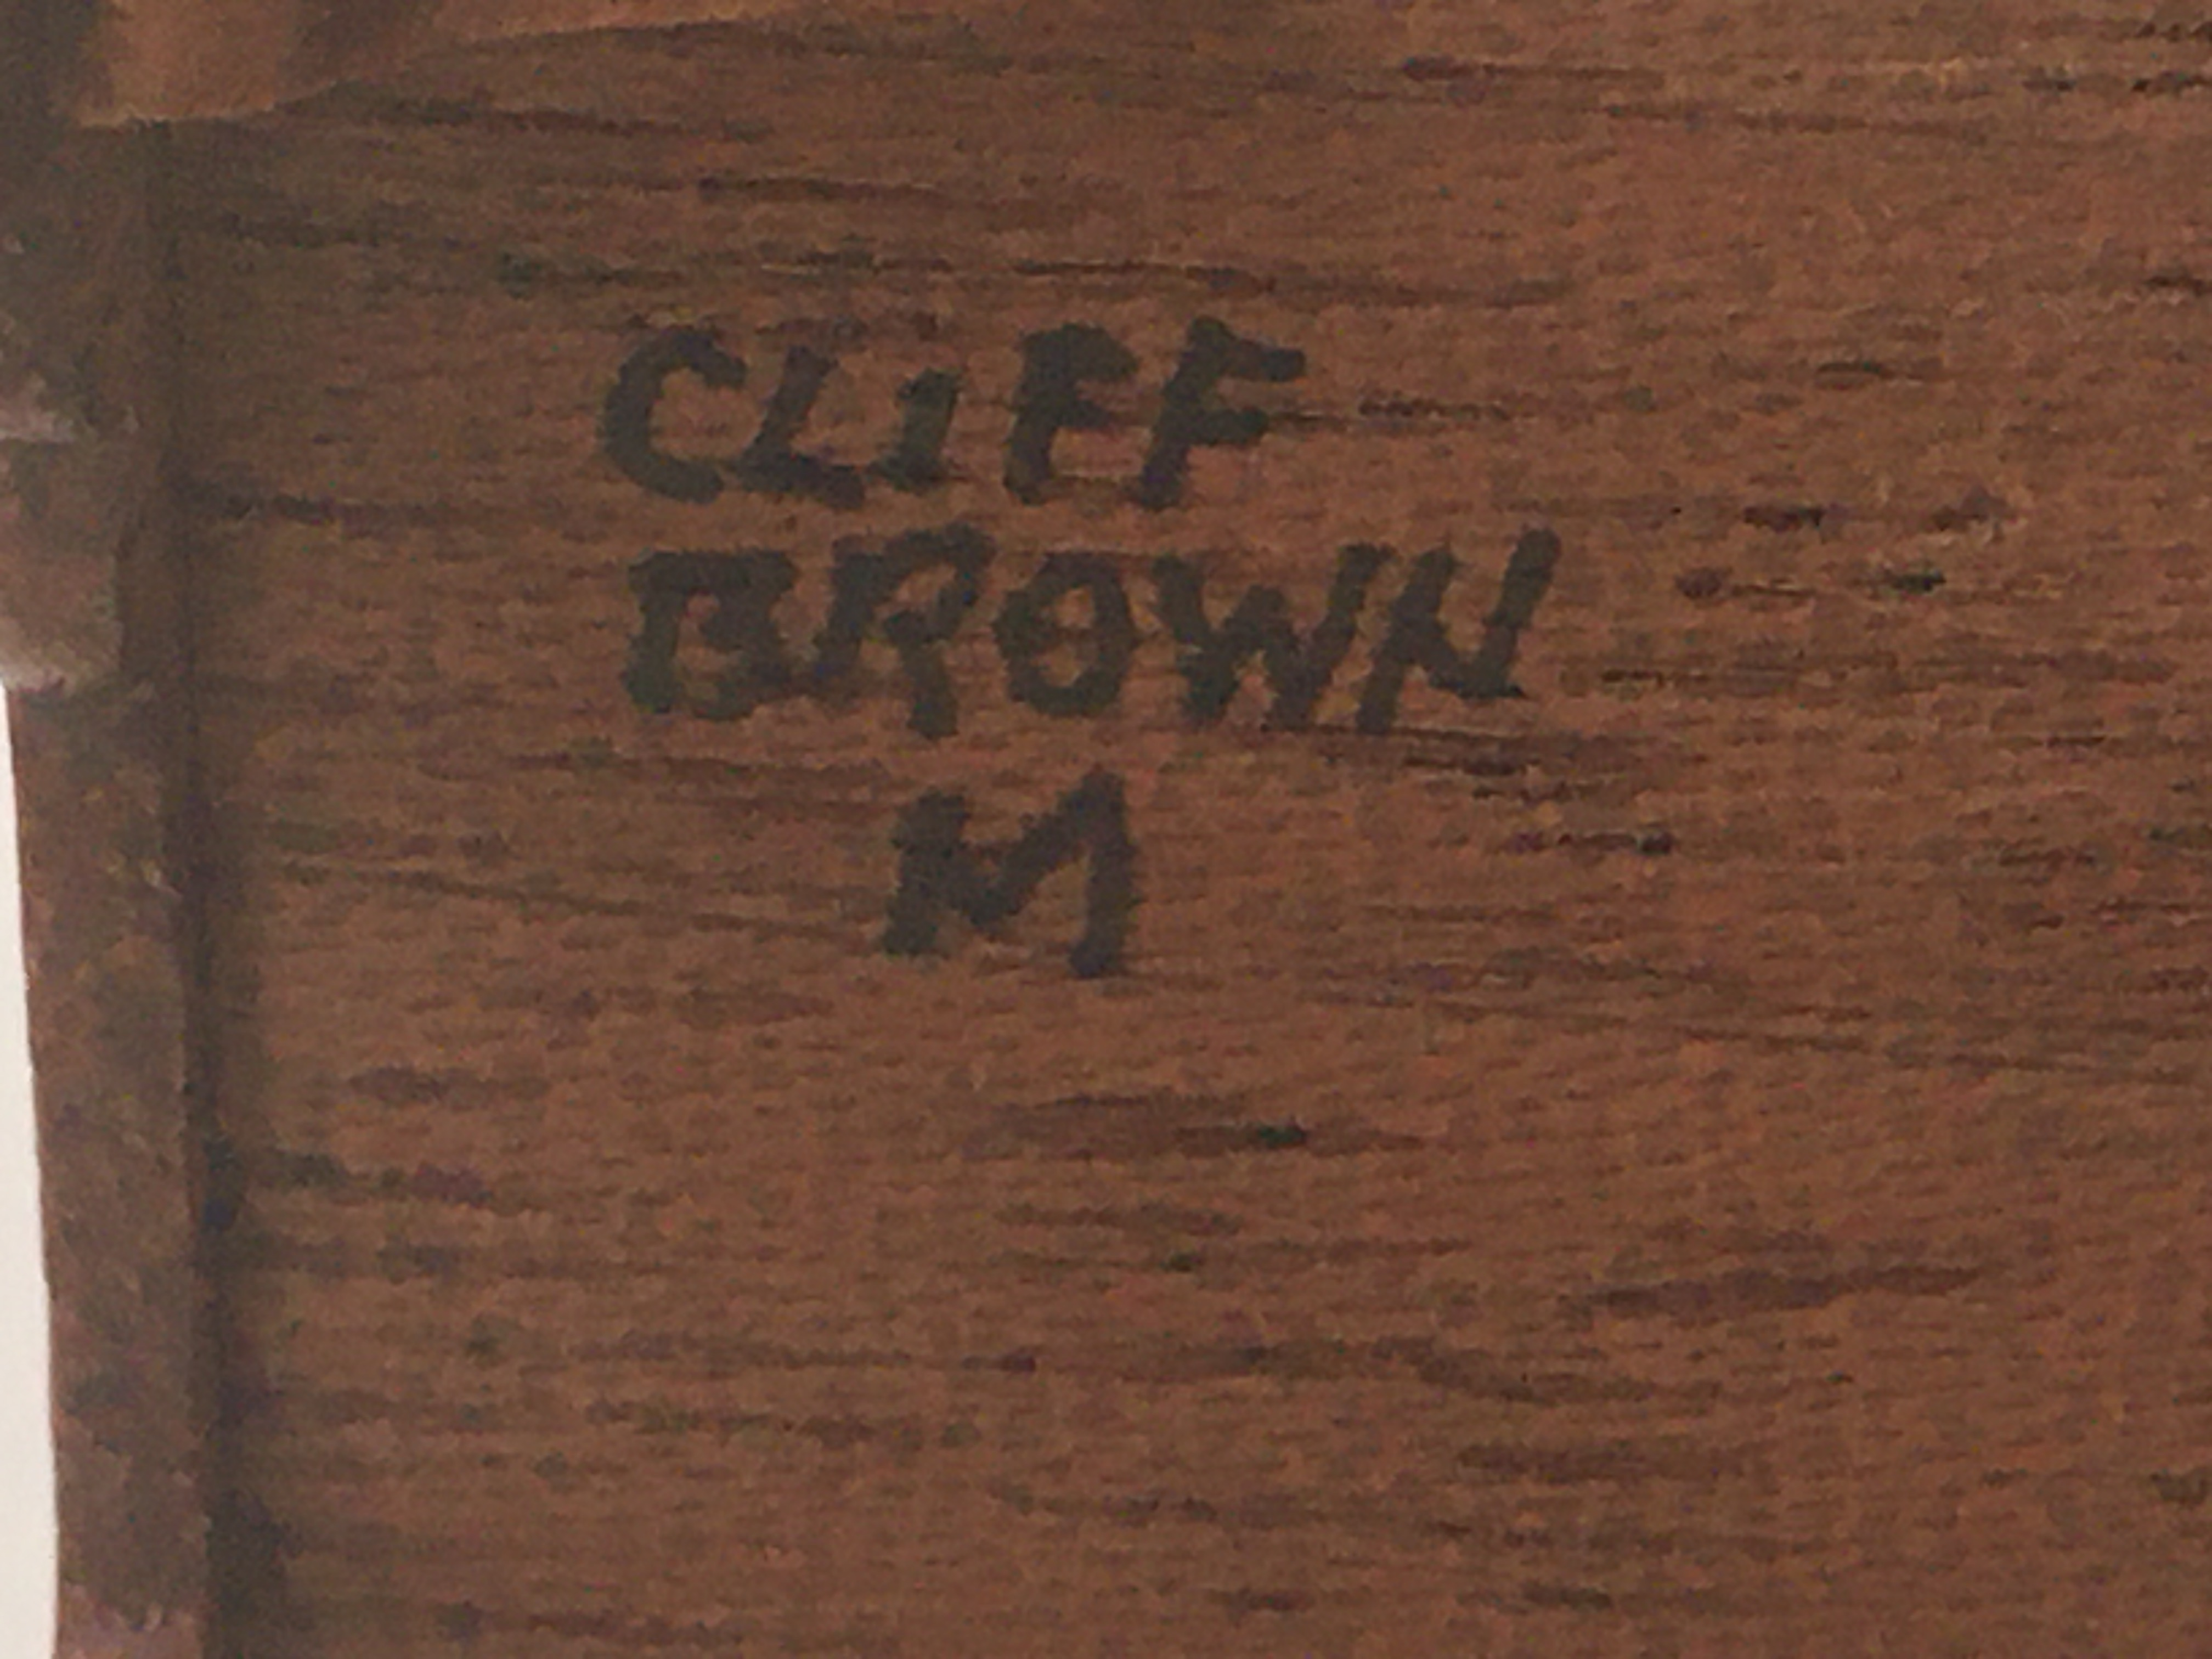 A piece of furniture signed 'Cliff Brown' and the letter 'M' on the base in black ink and in capitals.